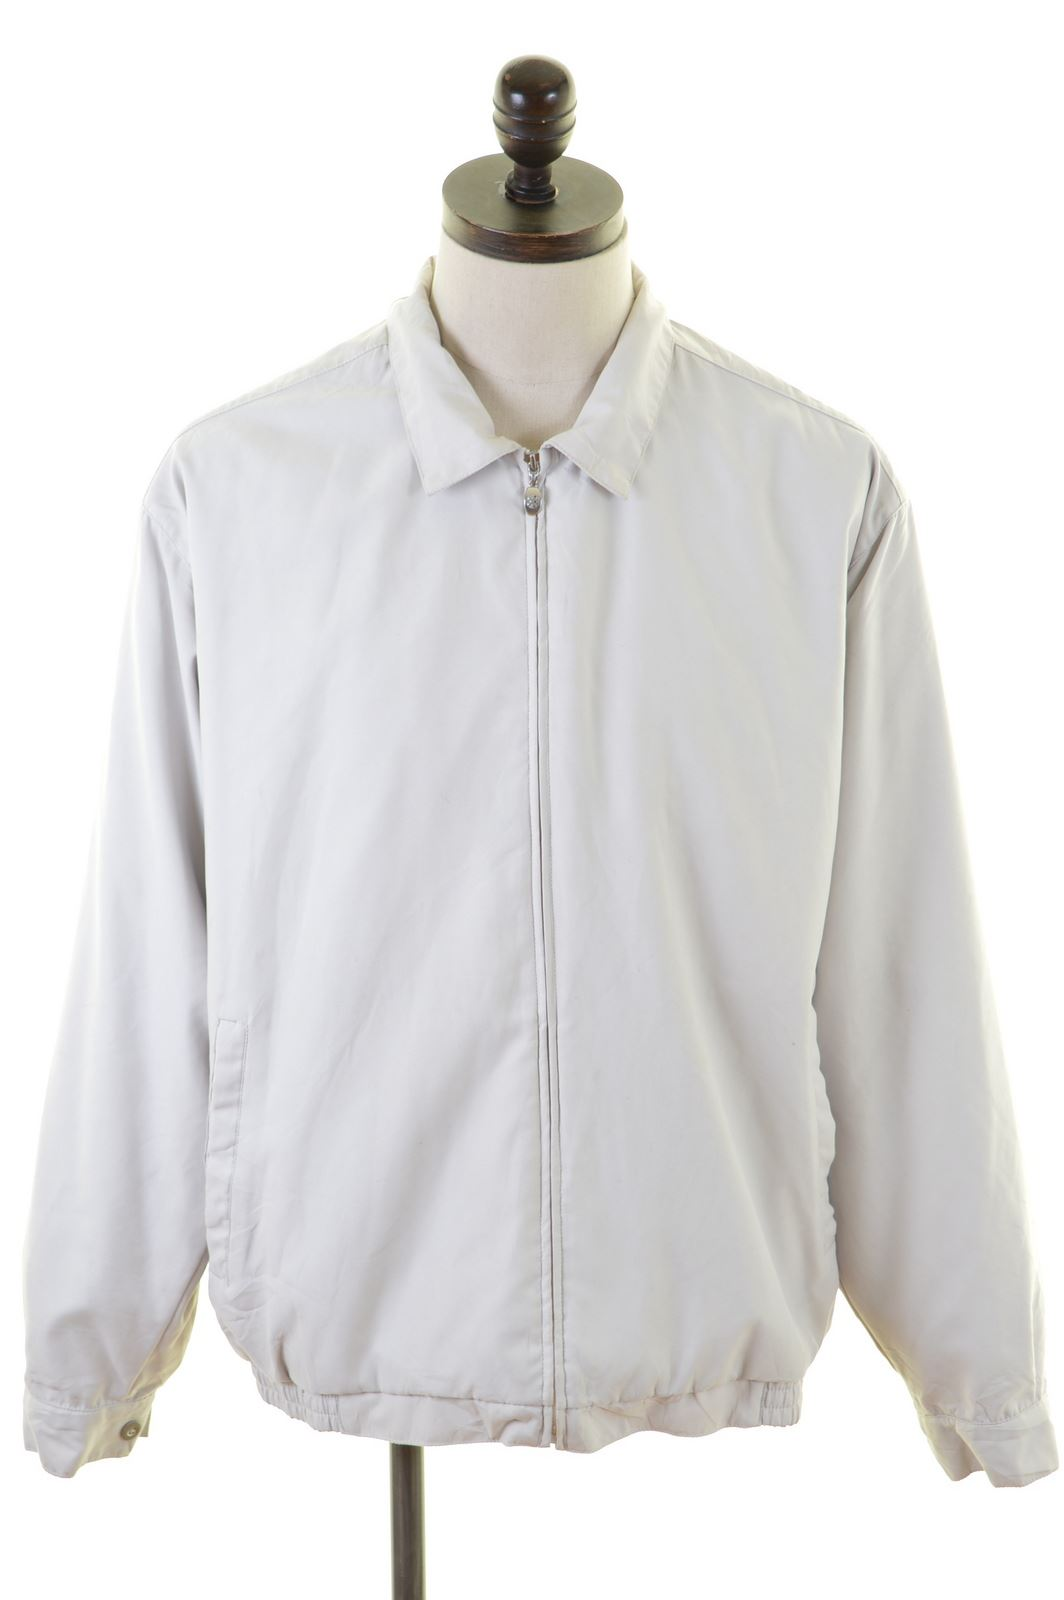 8dc3bd2a9 NIKE Mens Harrington Jacket Size 42 Large Off White Polyester ...